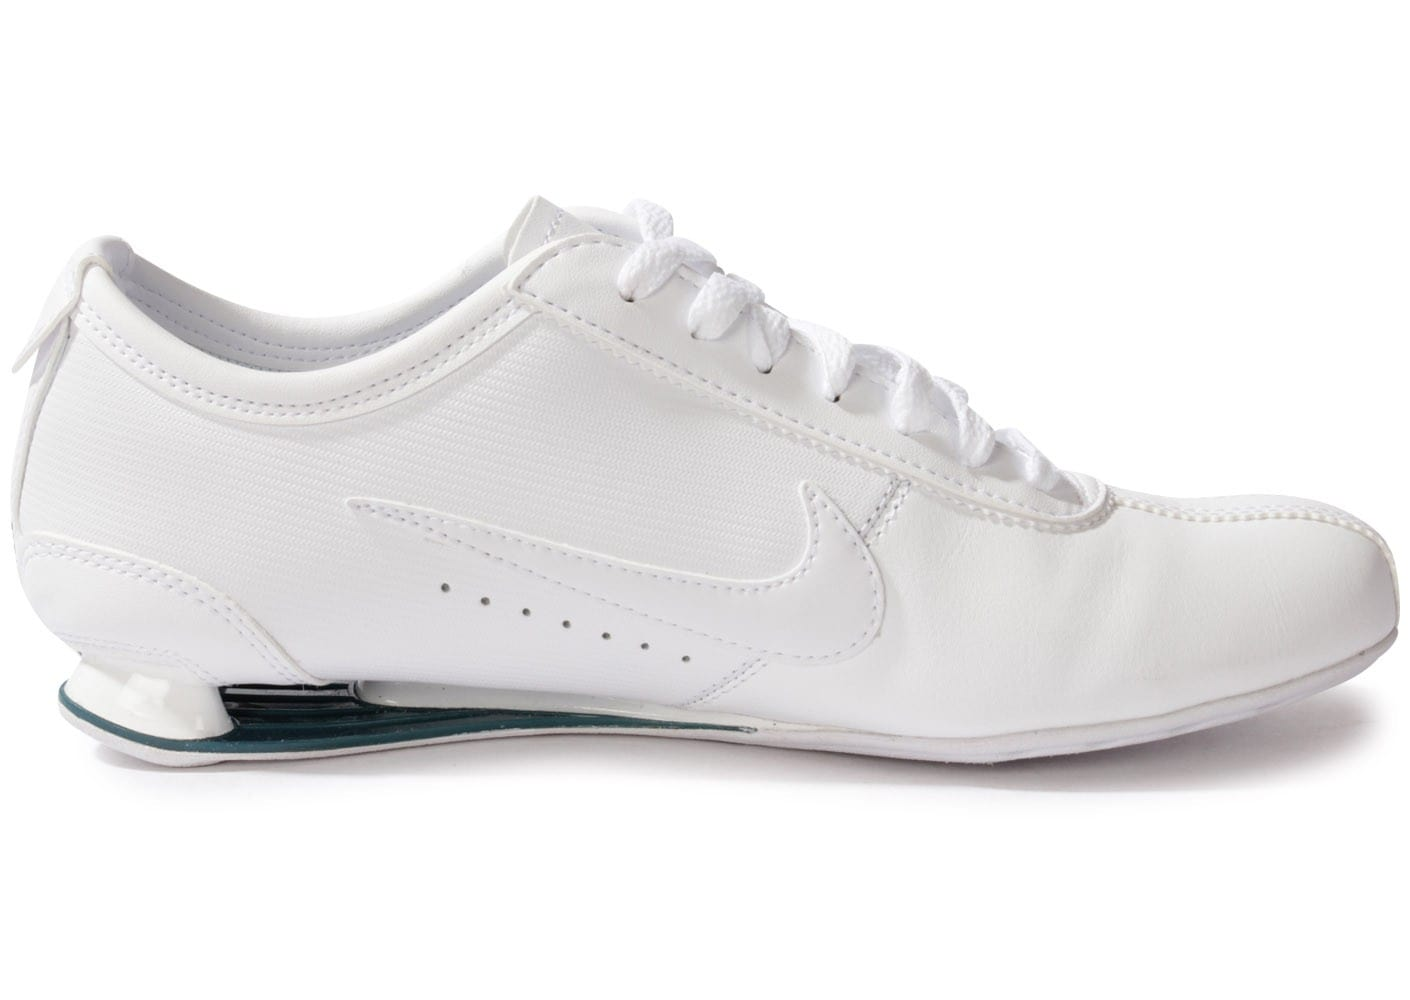 nike rivalry blanche chaussures homme chausport. Black Bedroom Furniture Sets. Home Design Ideas